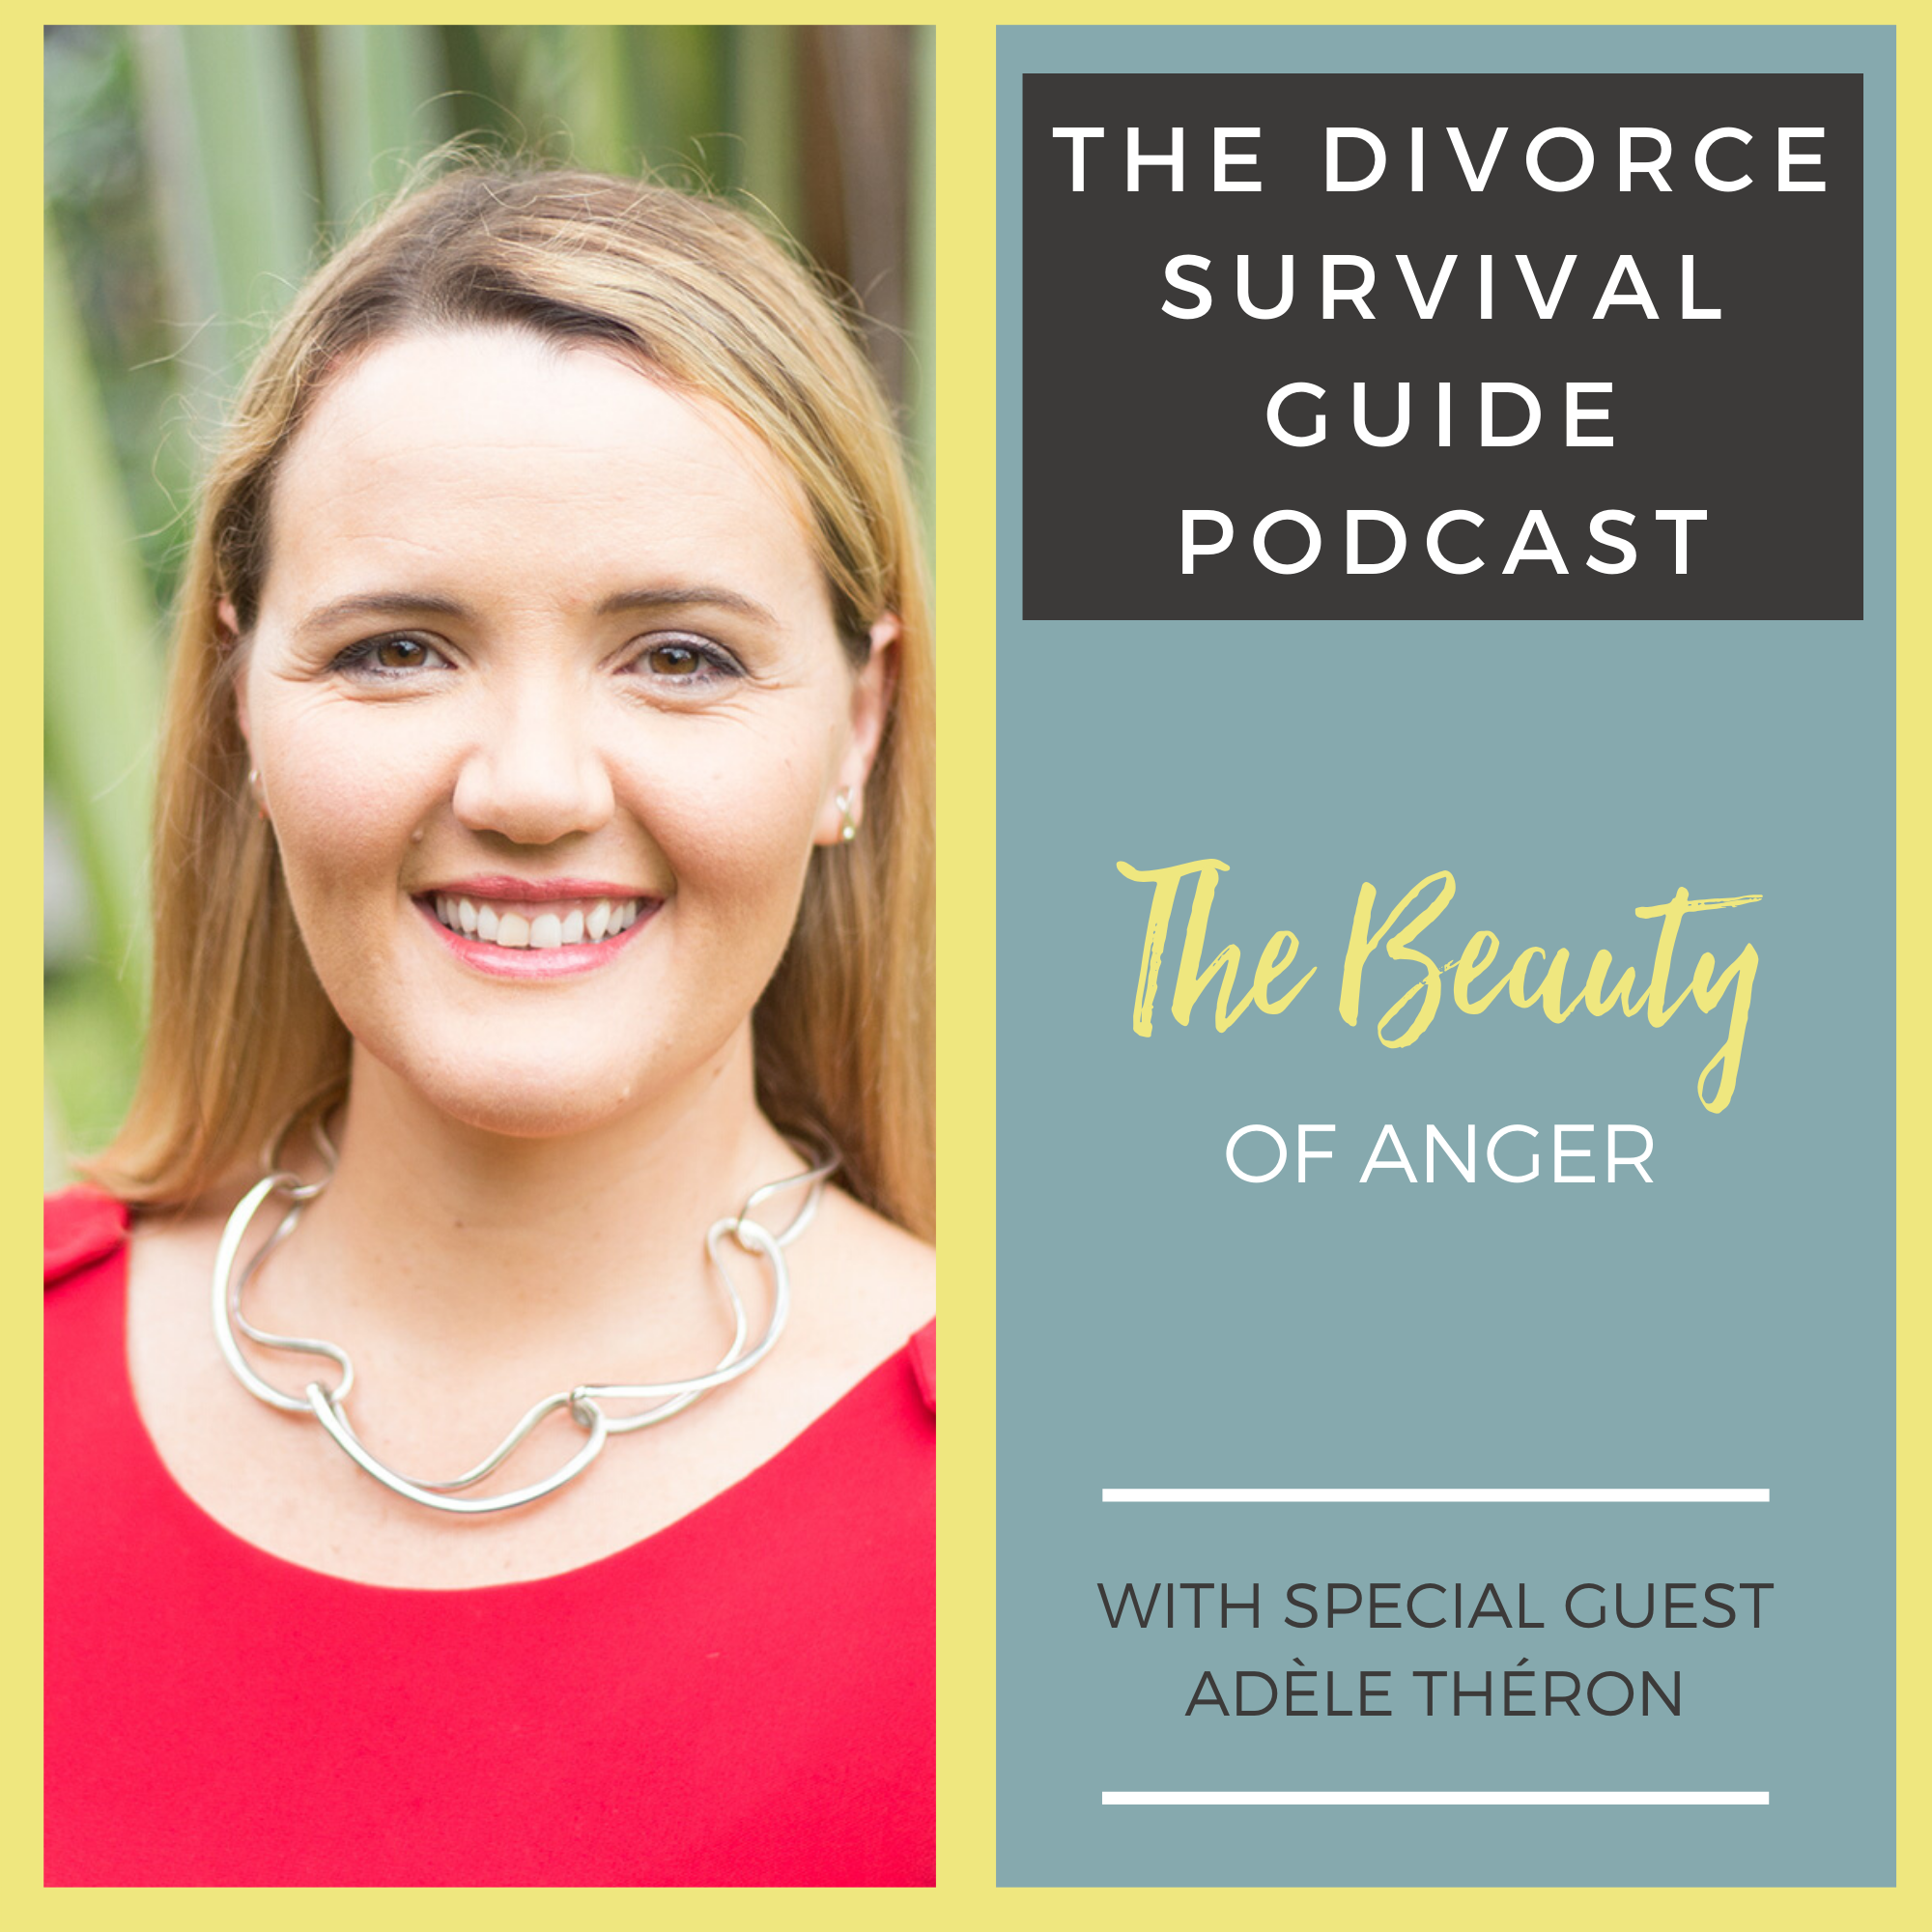 The Divorce Survival Guide Podcast - The Beauty of Anger with Adèle Théron